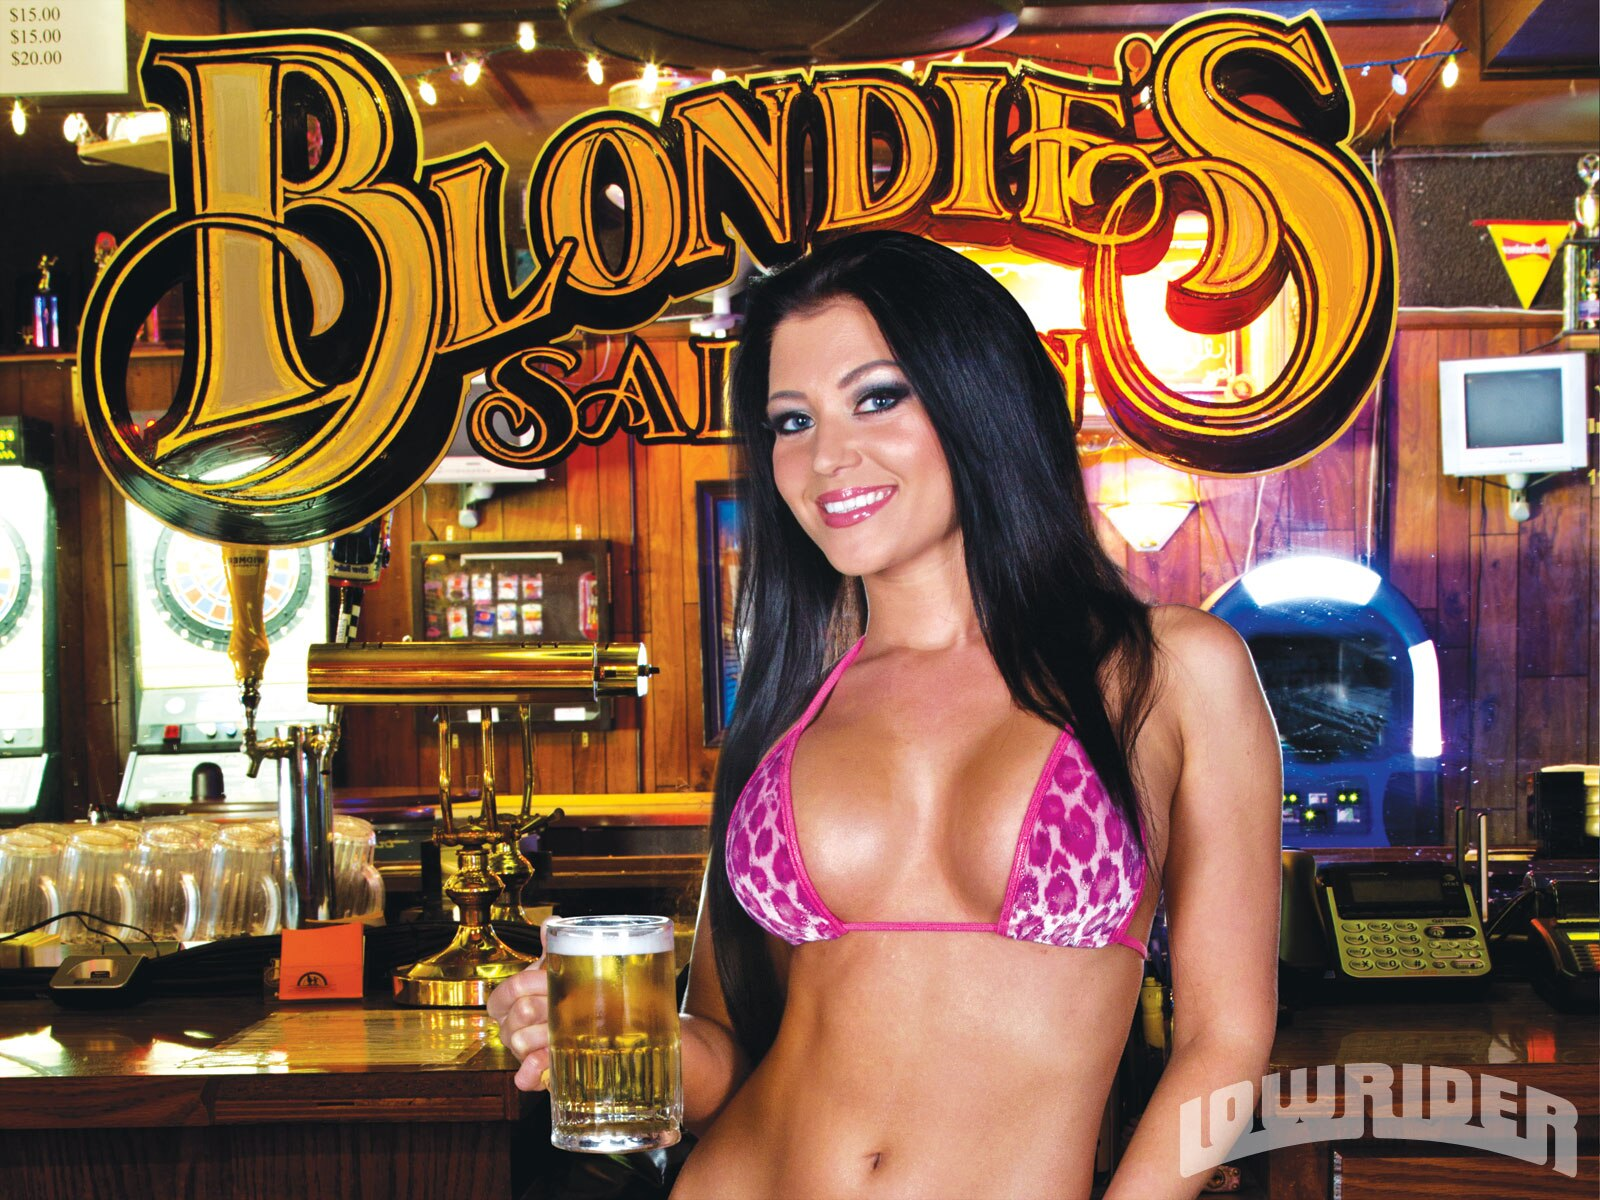 1111-lrms-01-ih-elena-blondies-saloon-last-call